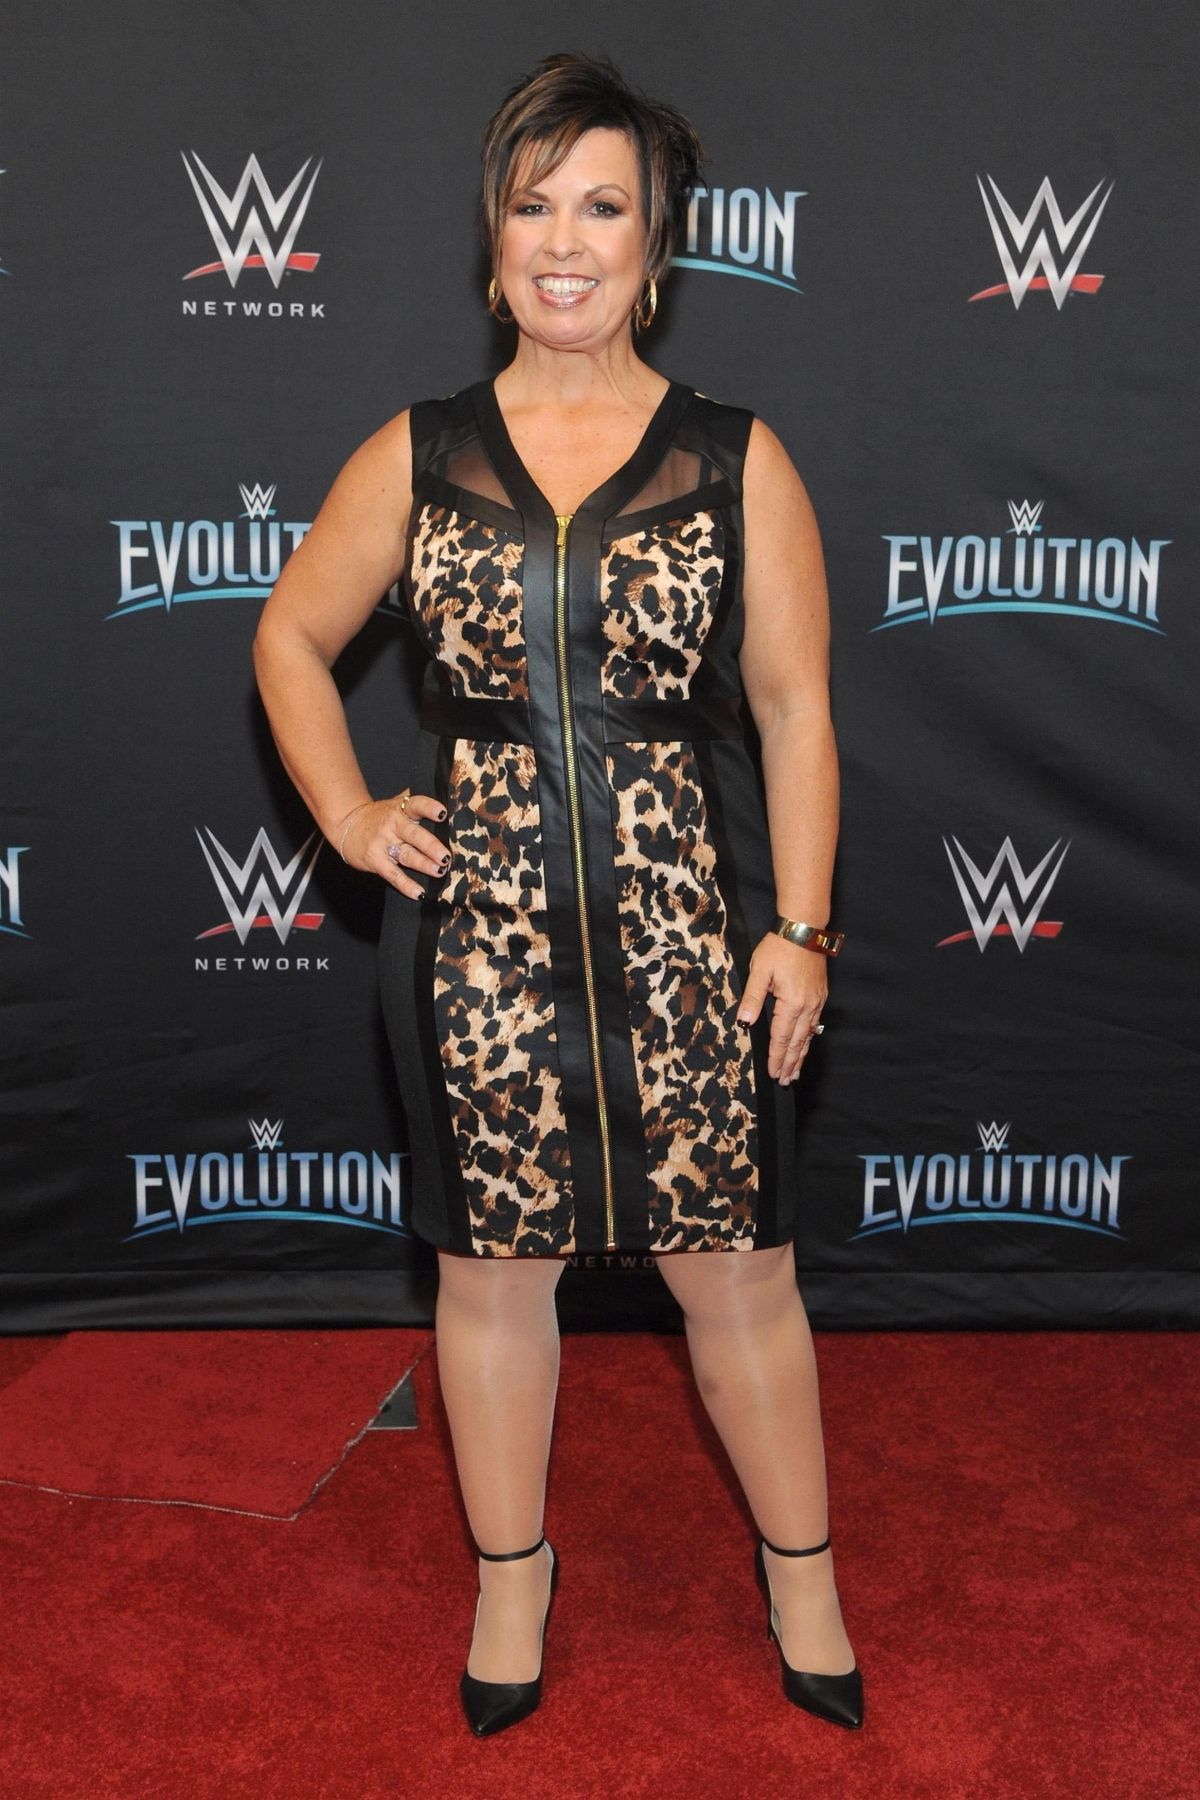 Vicky Guerrero At Wwe S First Ever All Women S Event